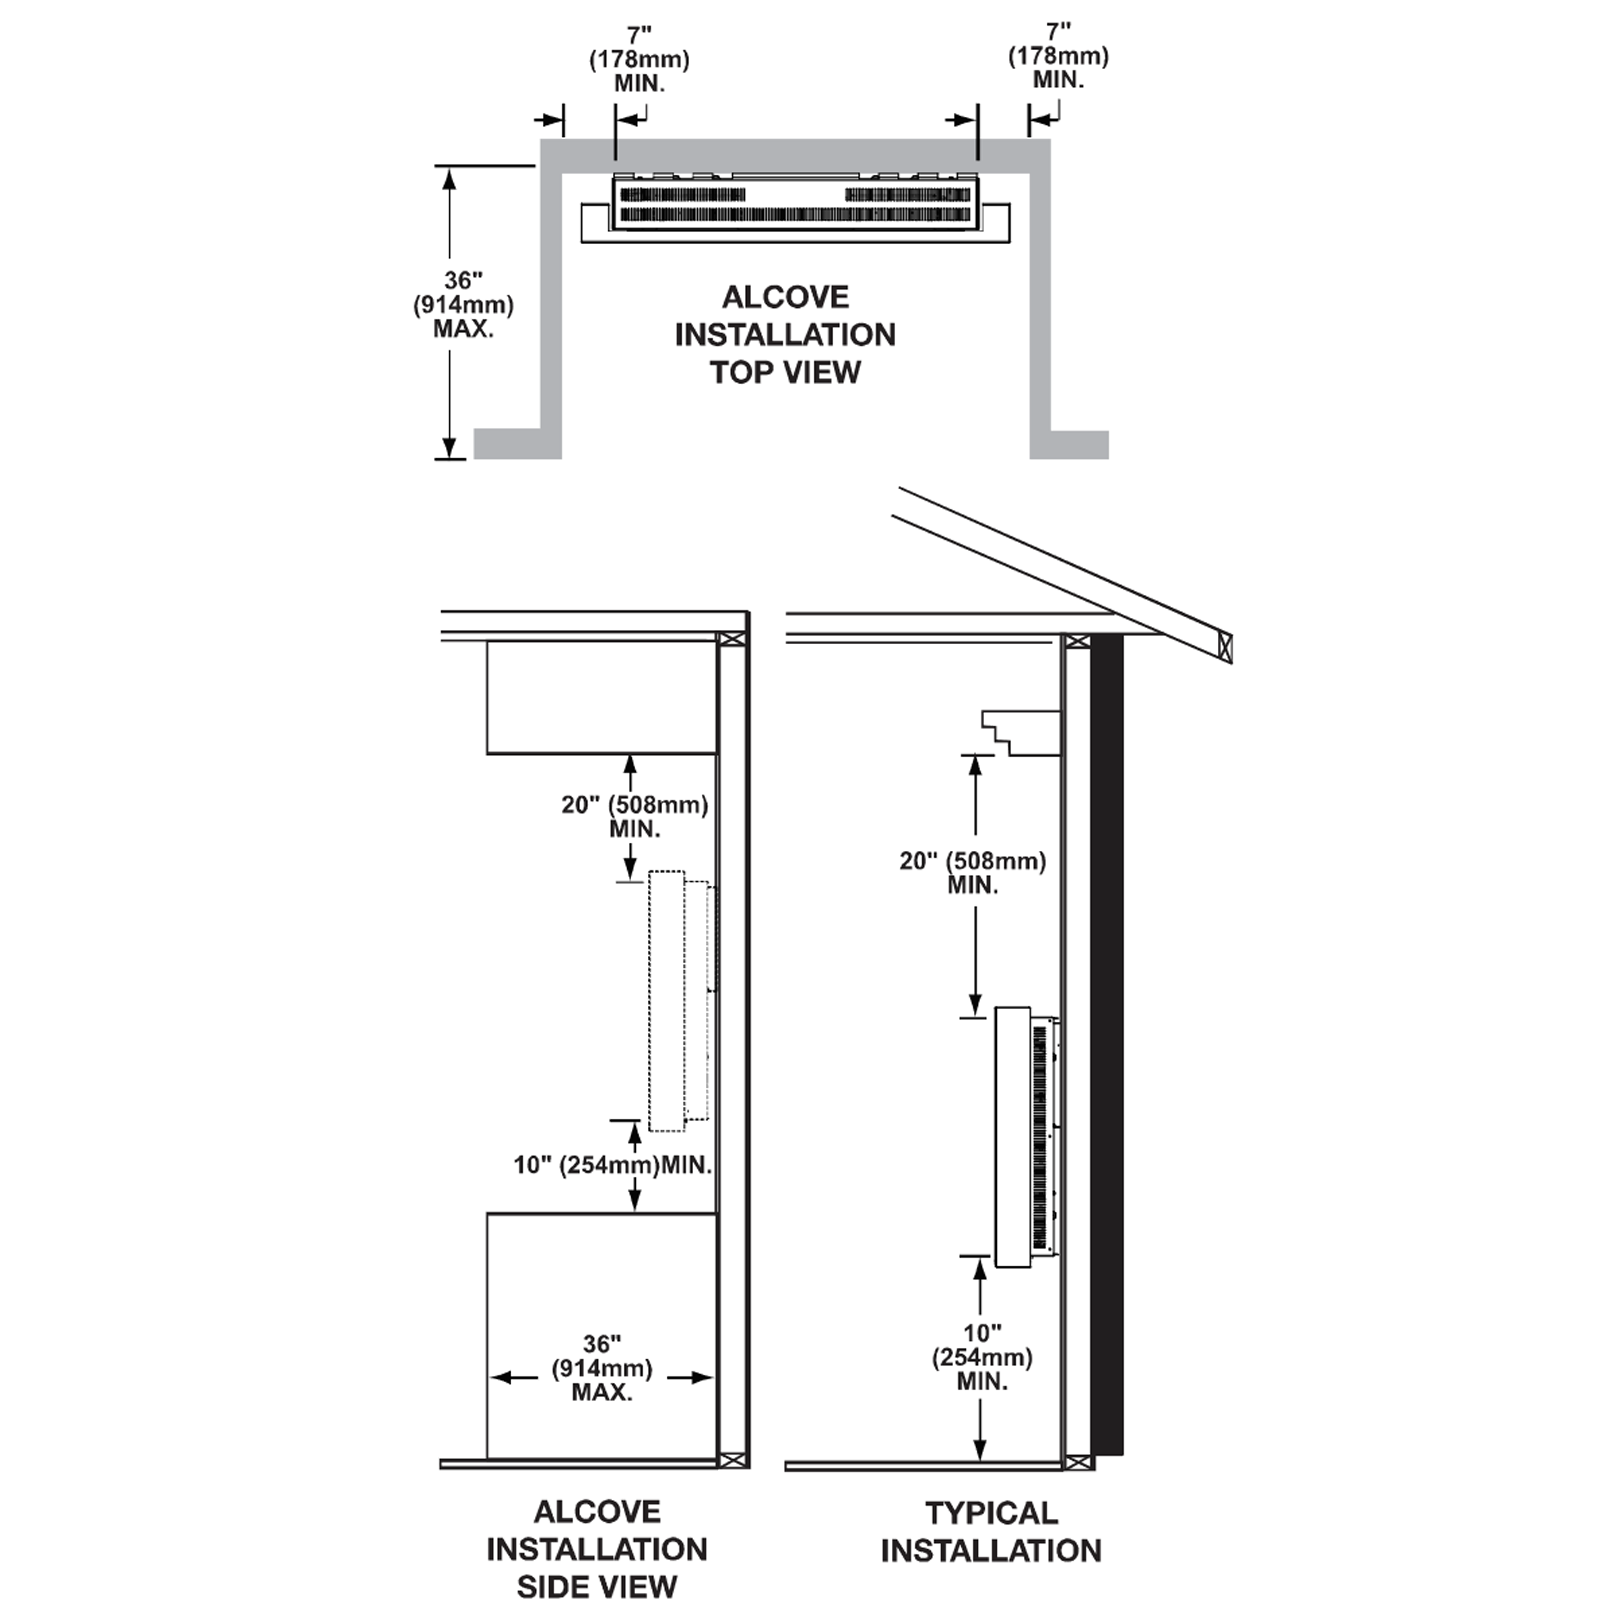 WHVF24 Technical Drawing 2